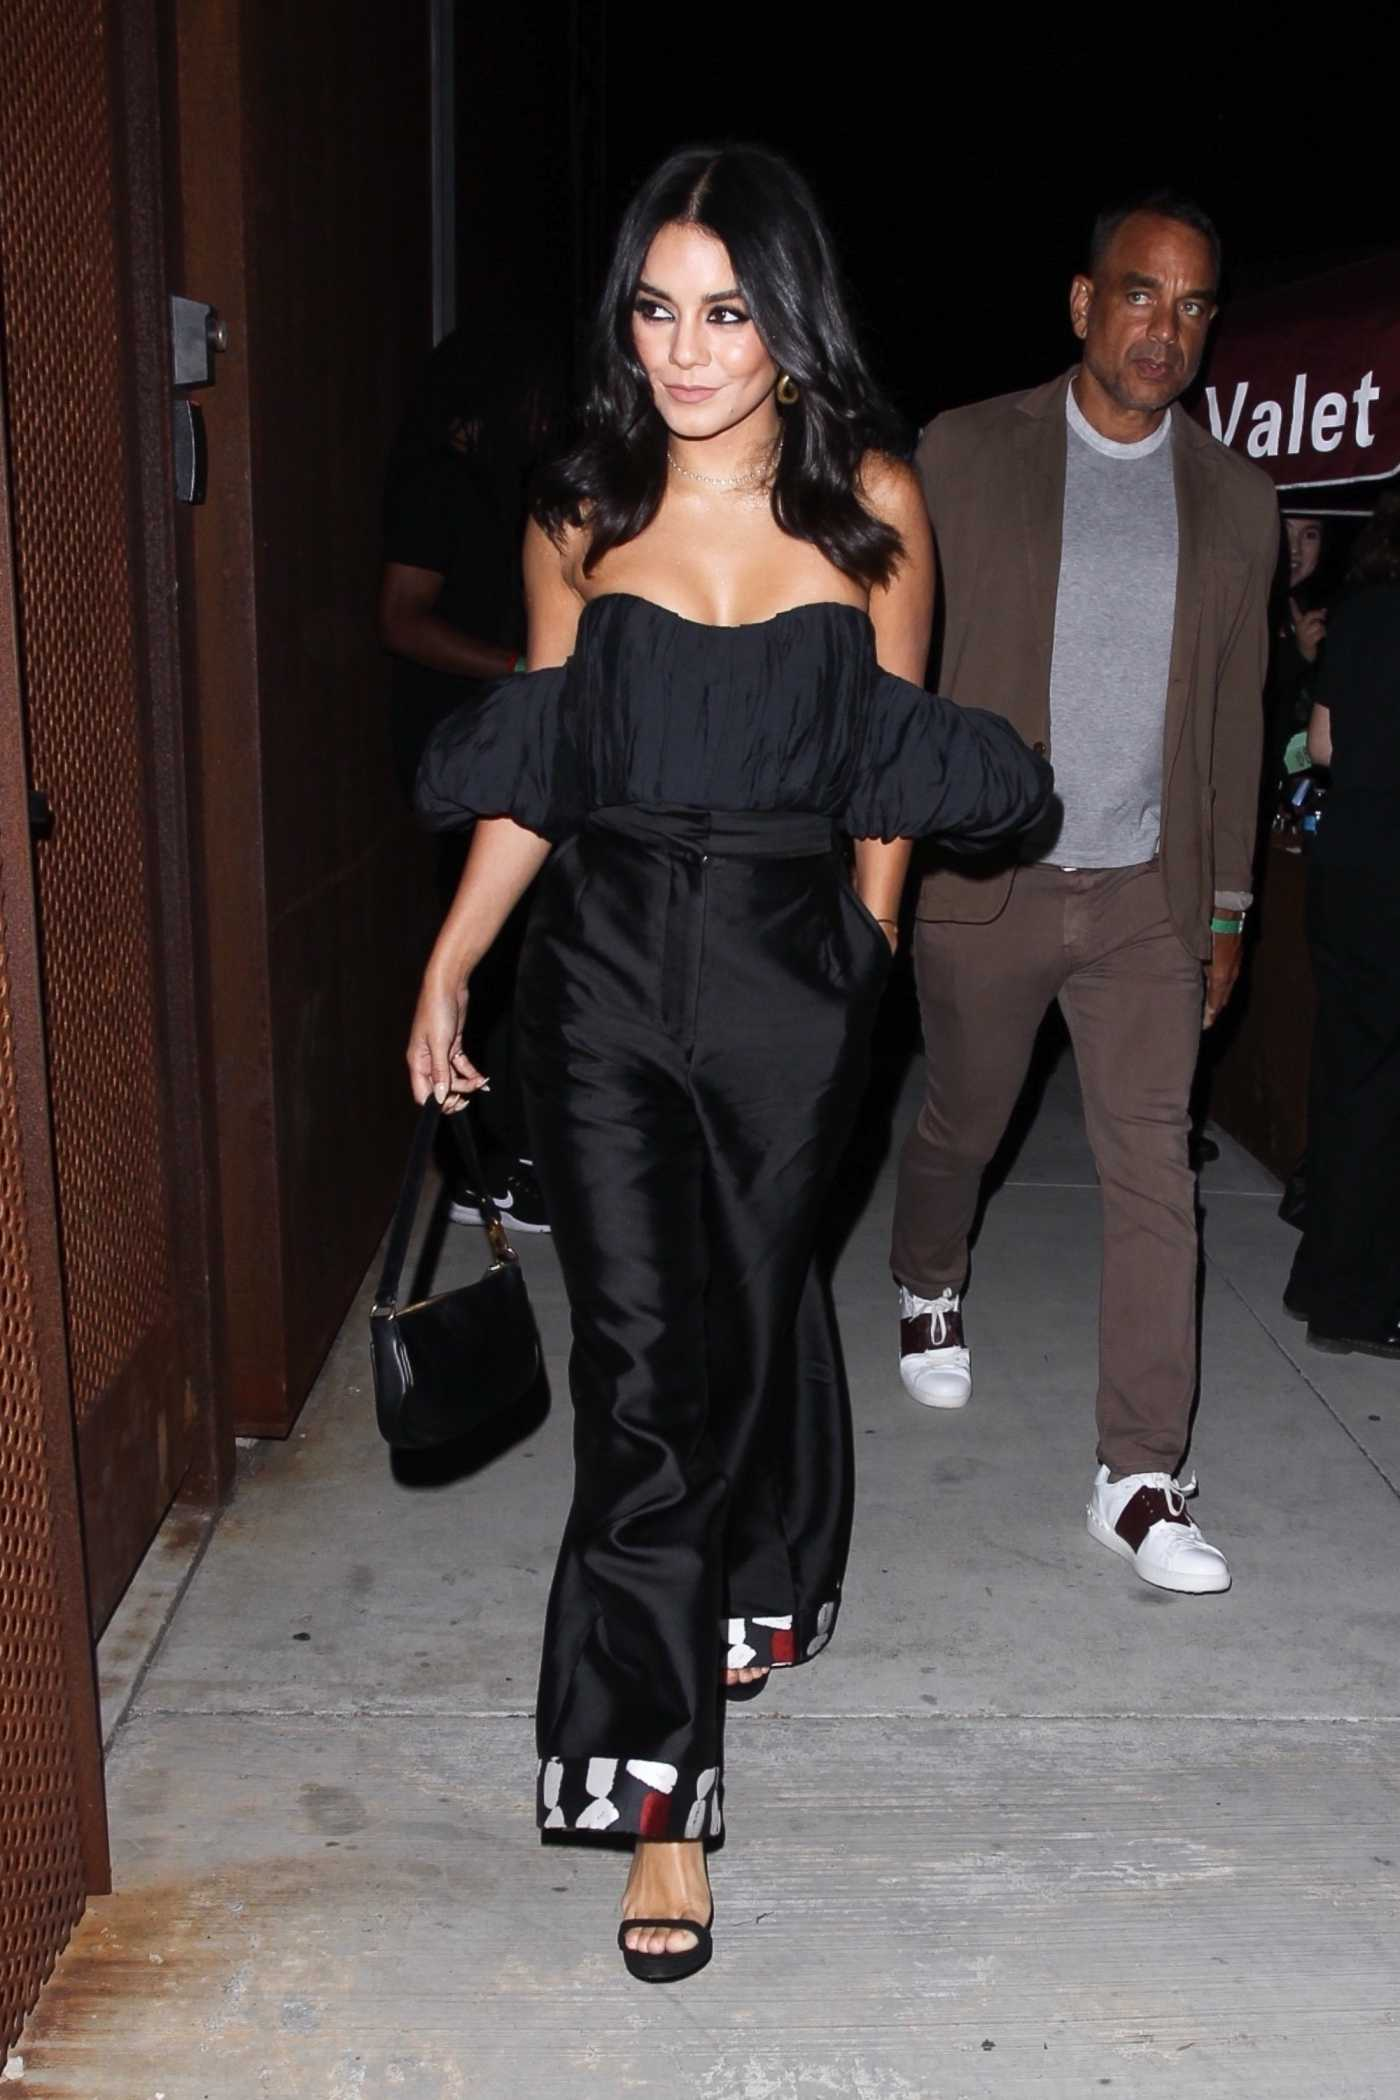 Vanessa Hudgens in a Black Blouse Stops by the Weedmaps Museum of Weed in Hollywood 08/01/2019